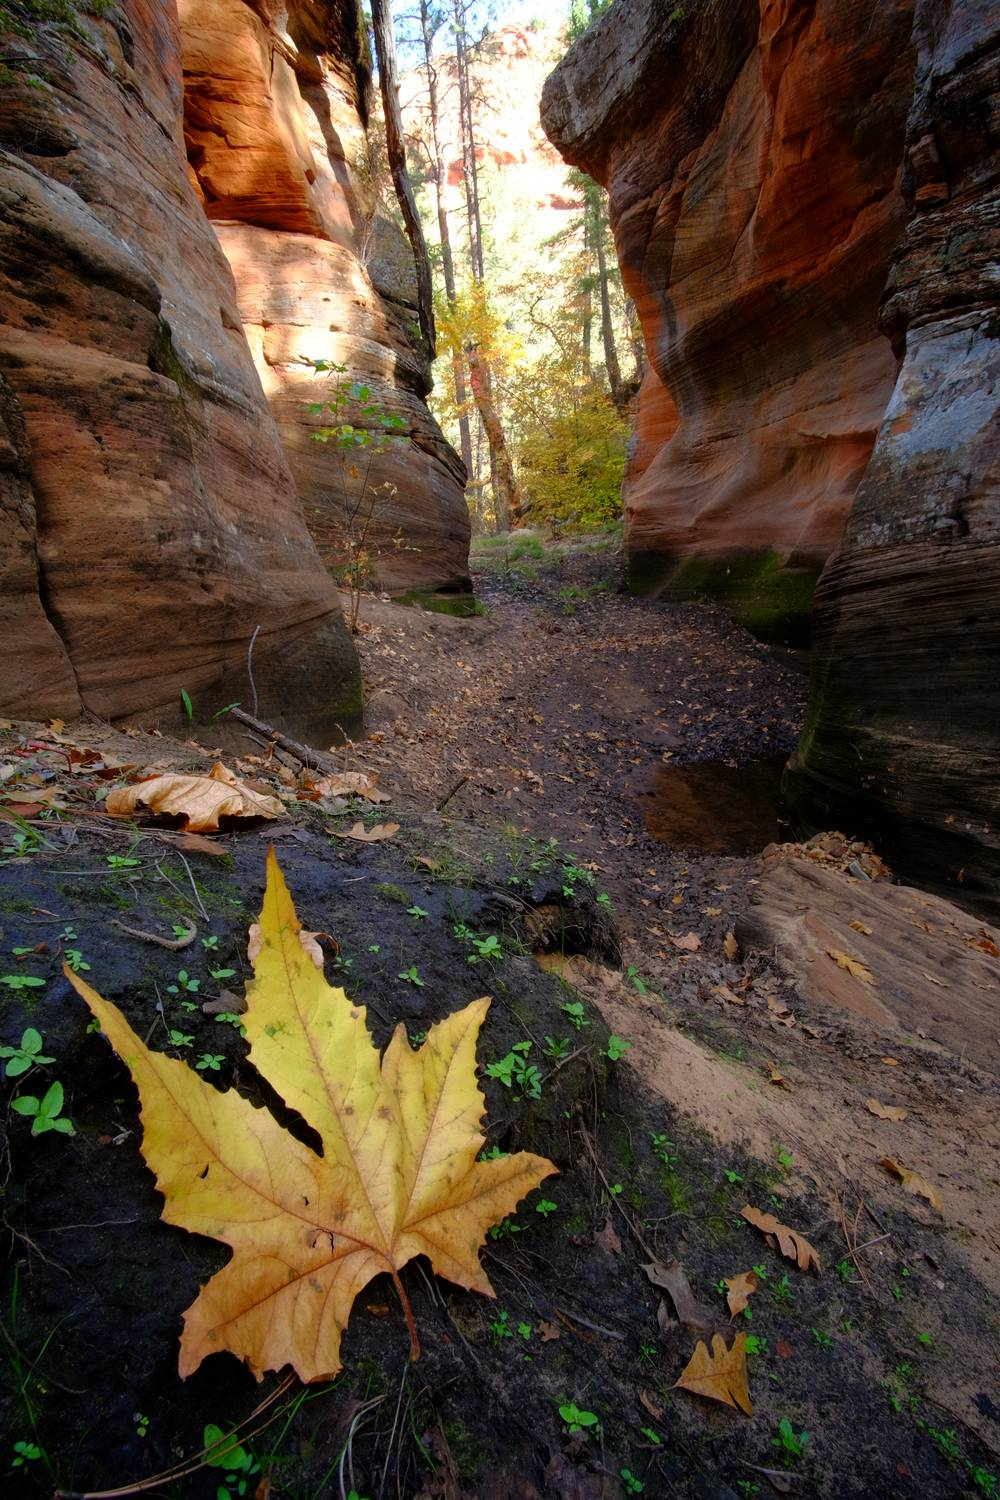 At 3 miles I choose to enter the canyon and explore rather than following the trail, this proved to be quite fruitful